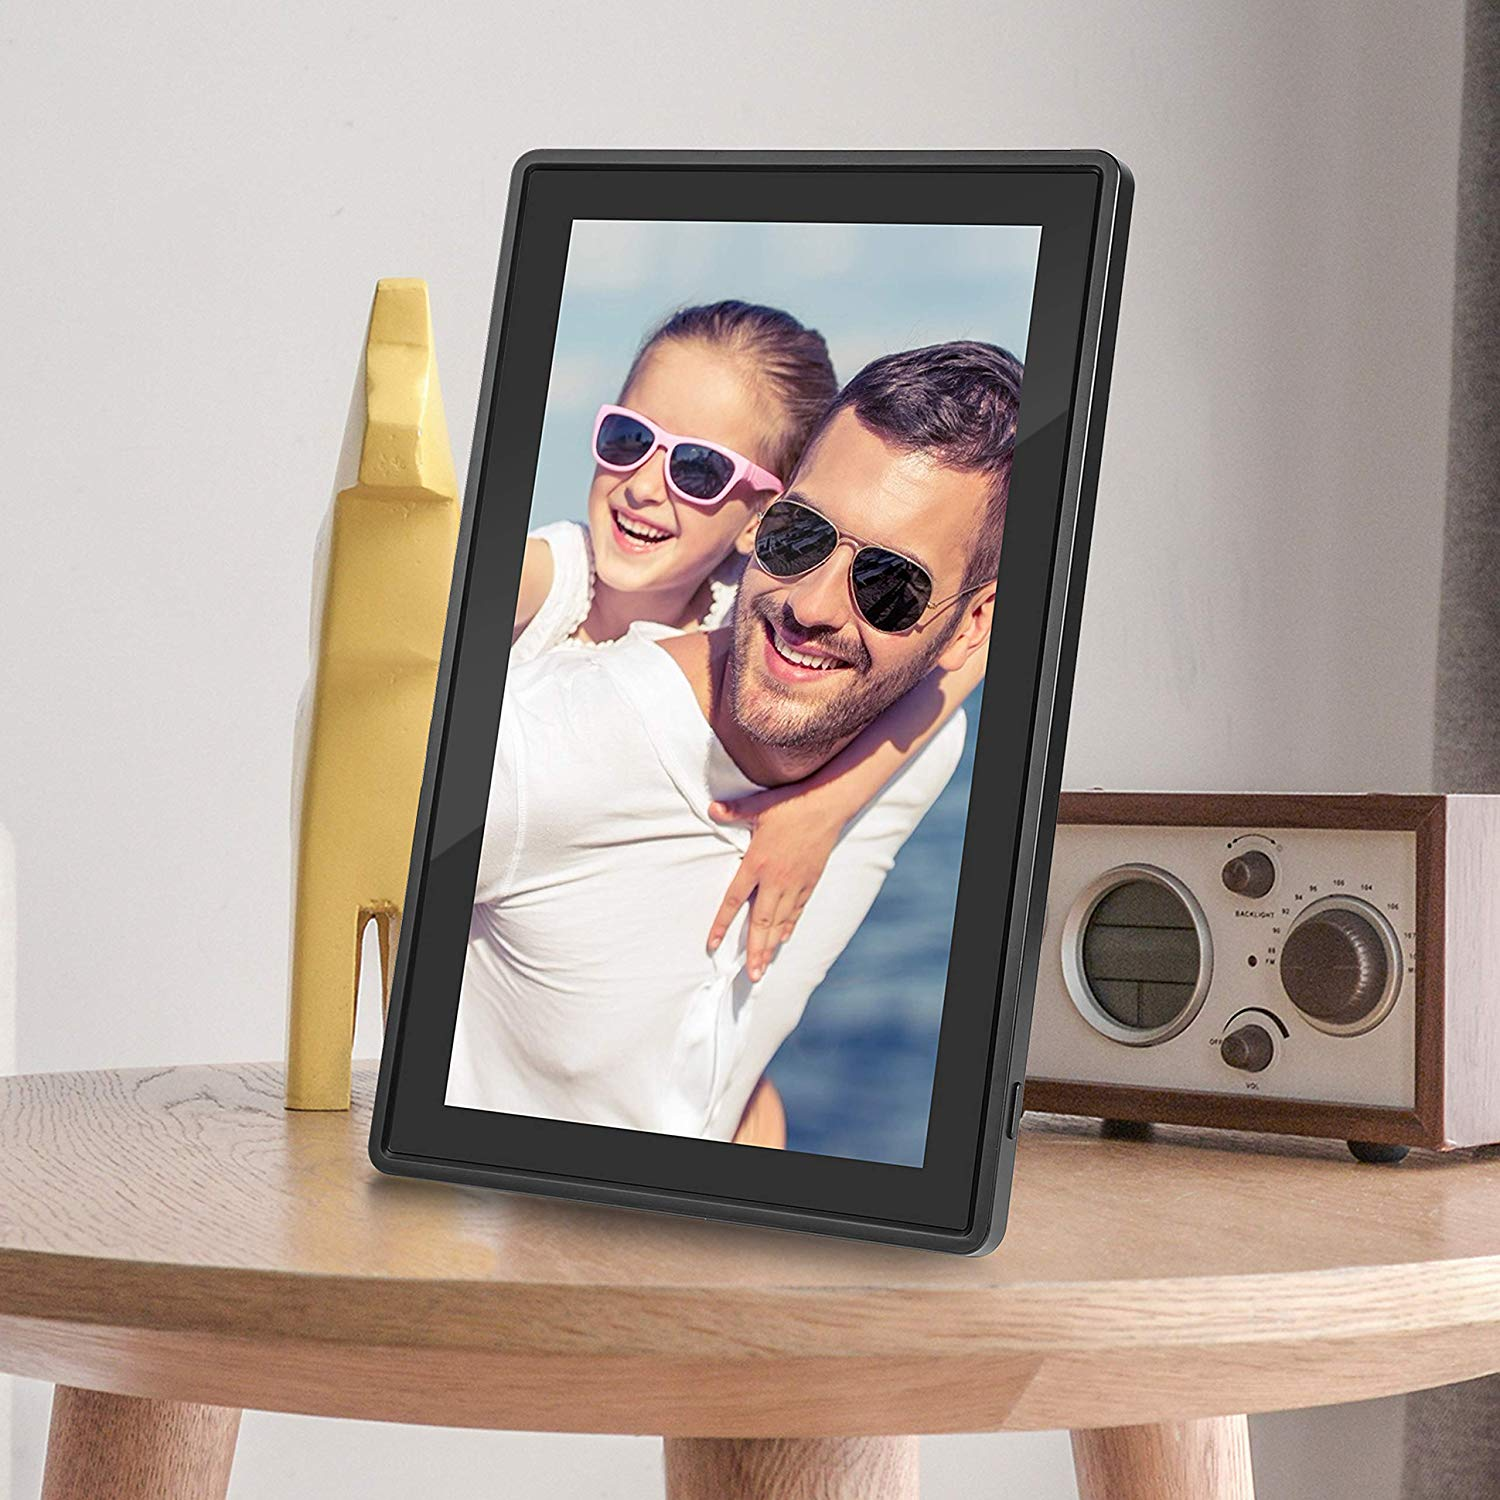 A digital picture frame is a great gift for college students.